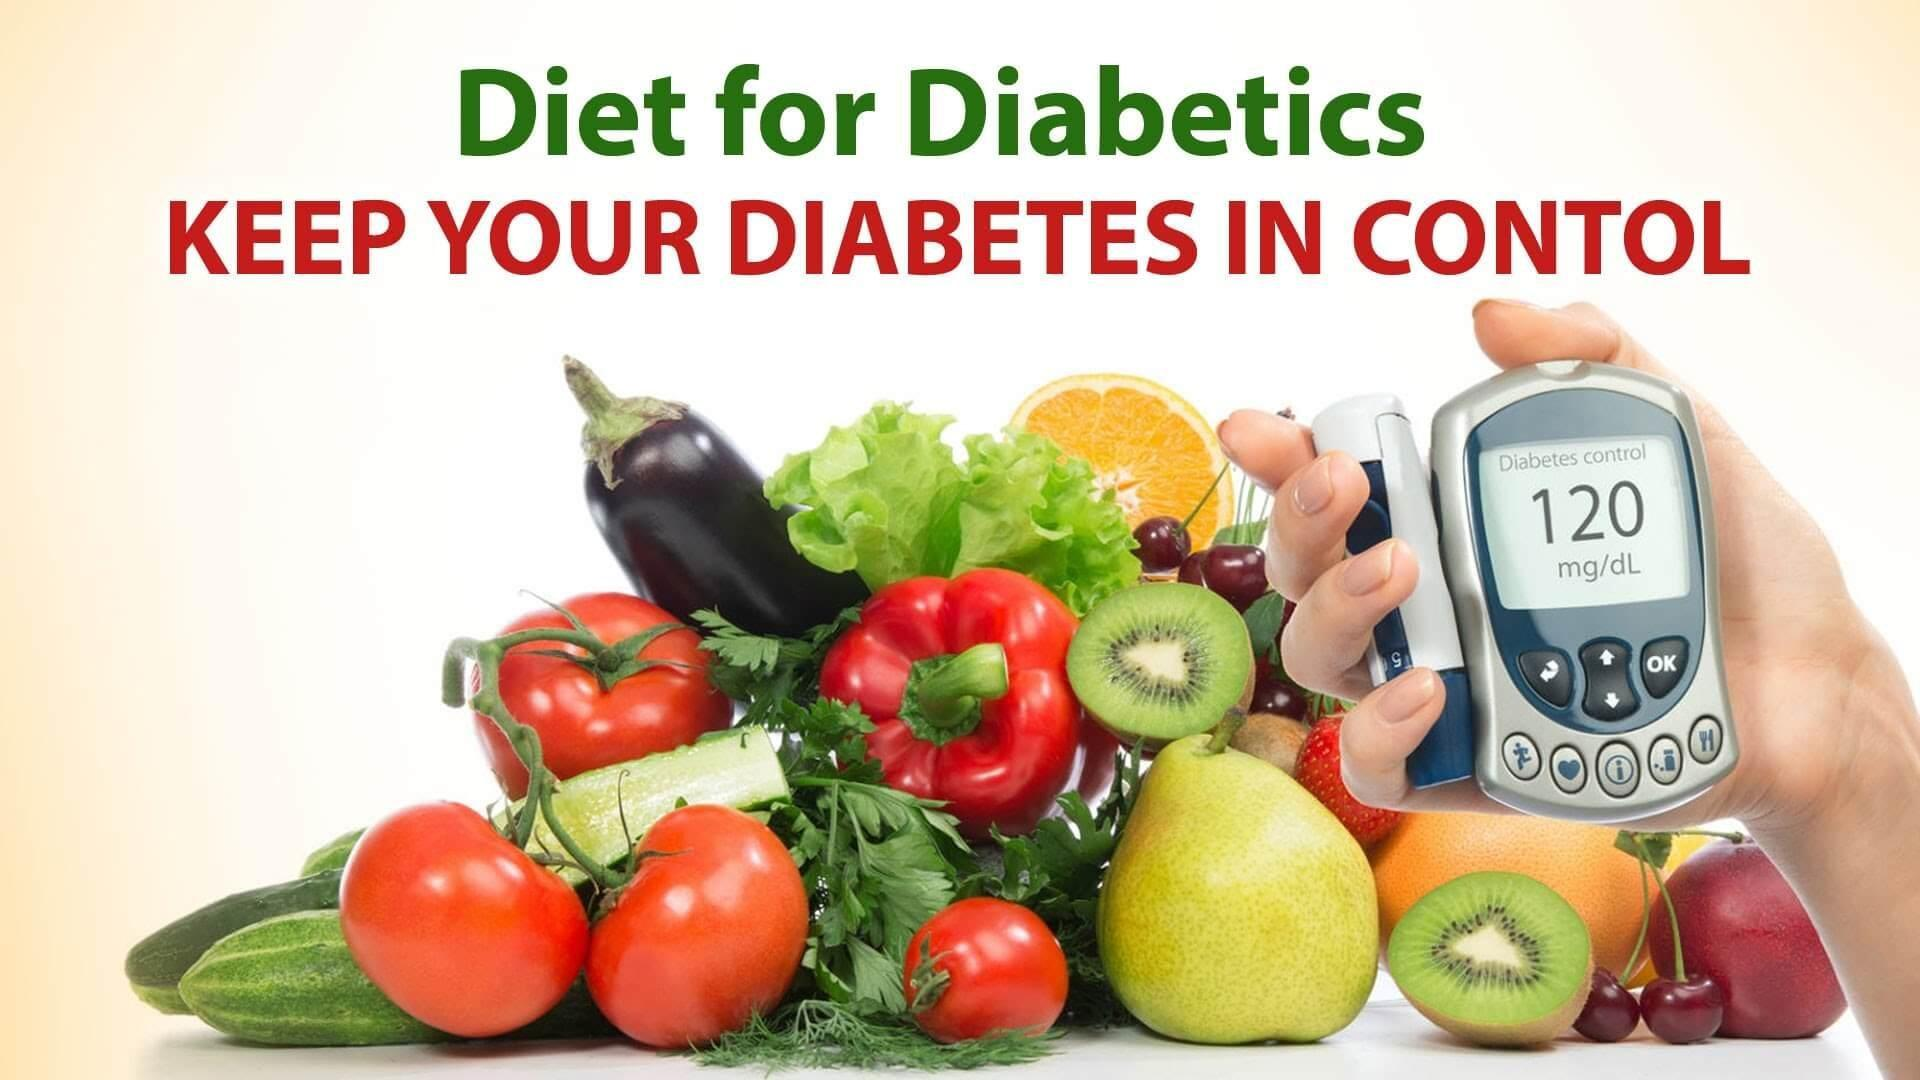 Diabetic Living Online.com/what To Eat